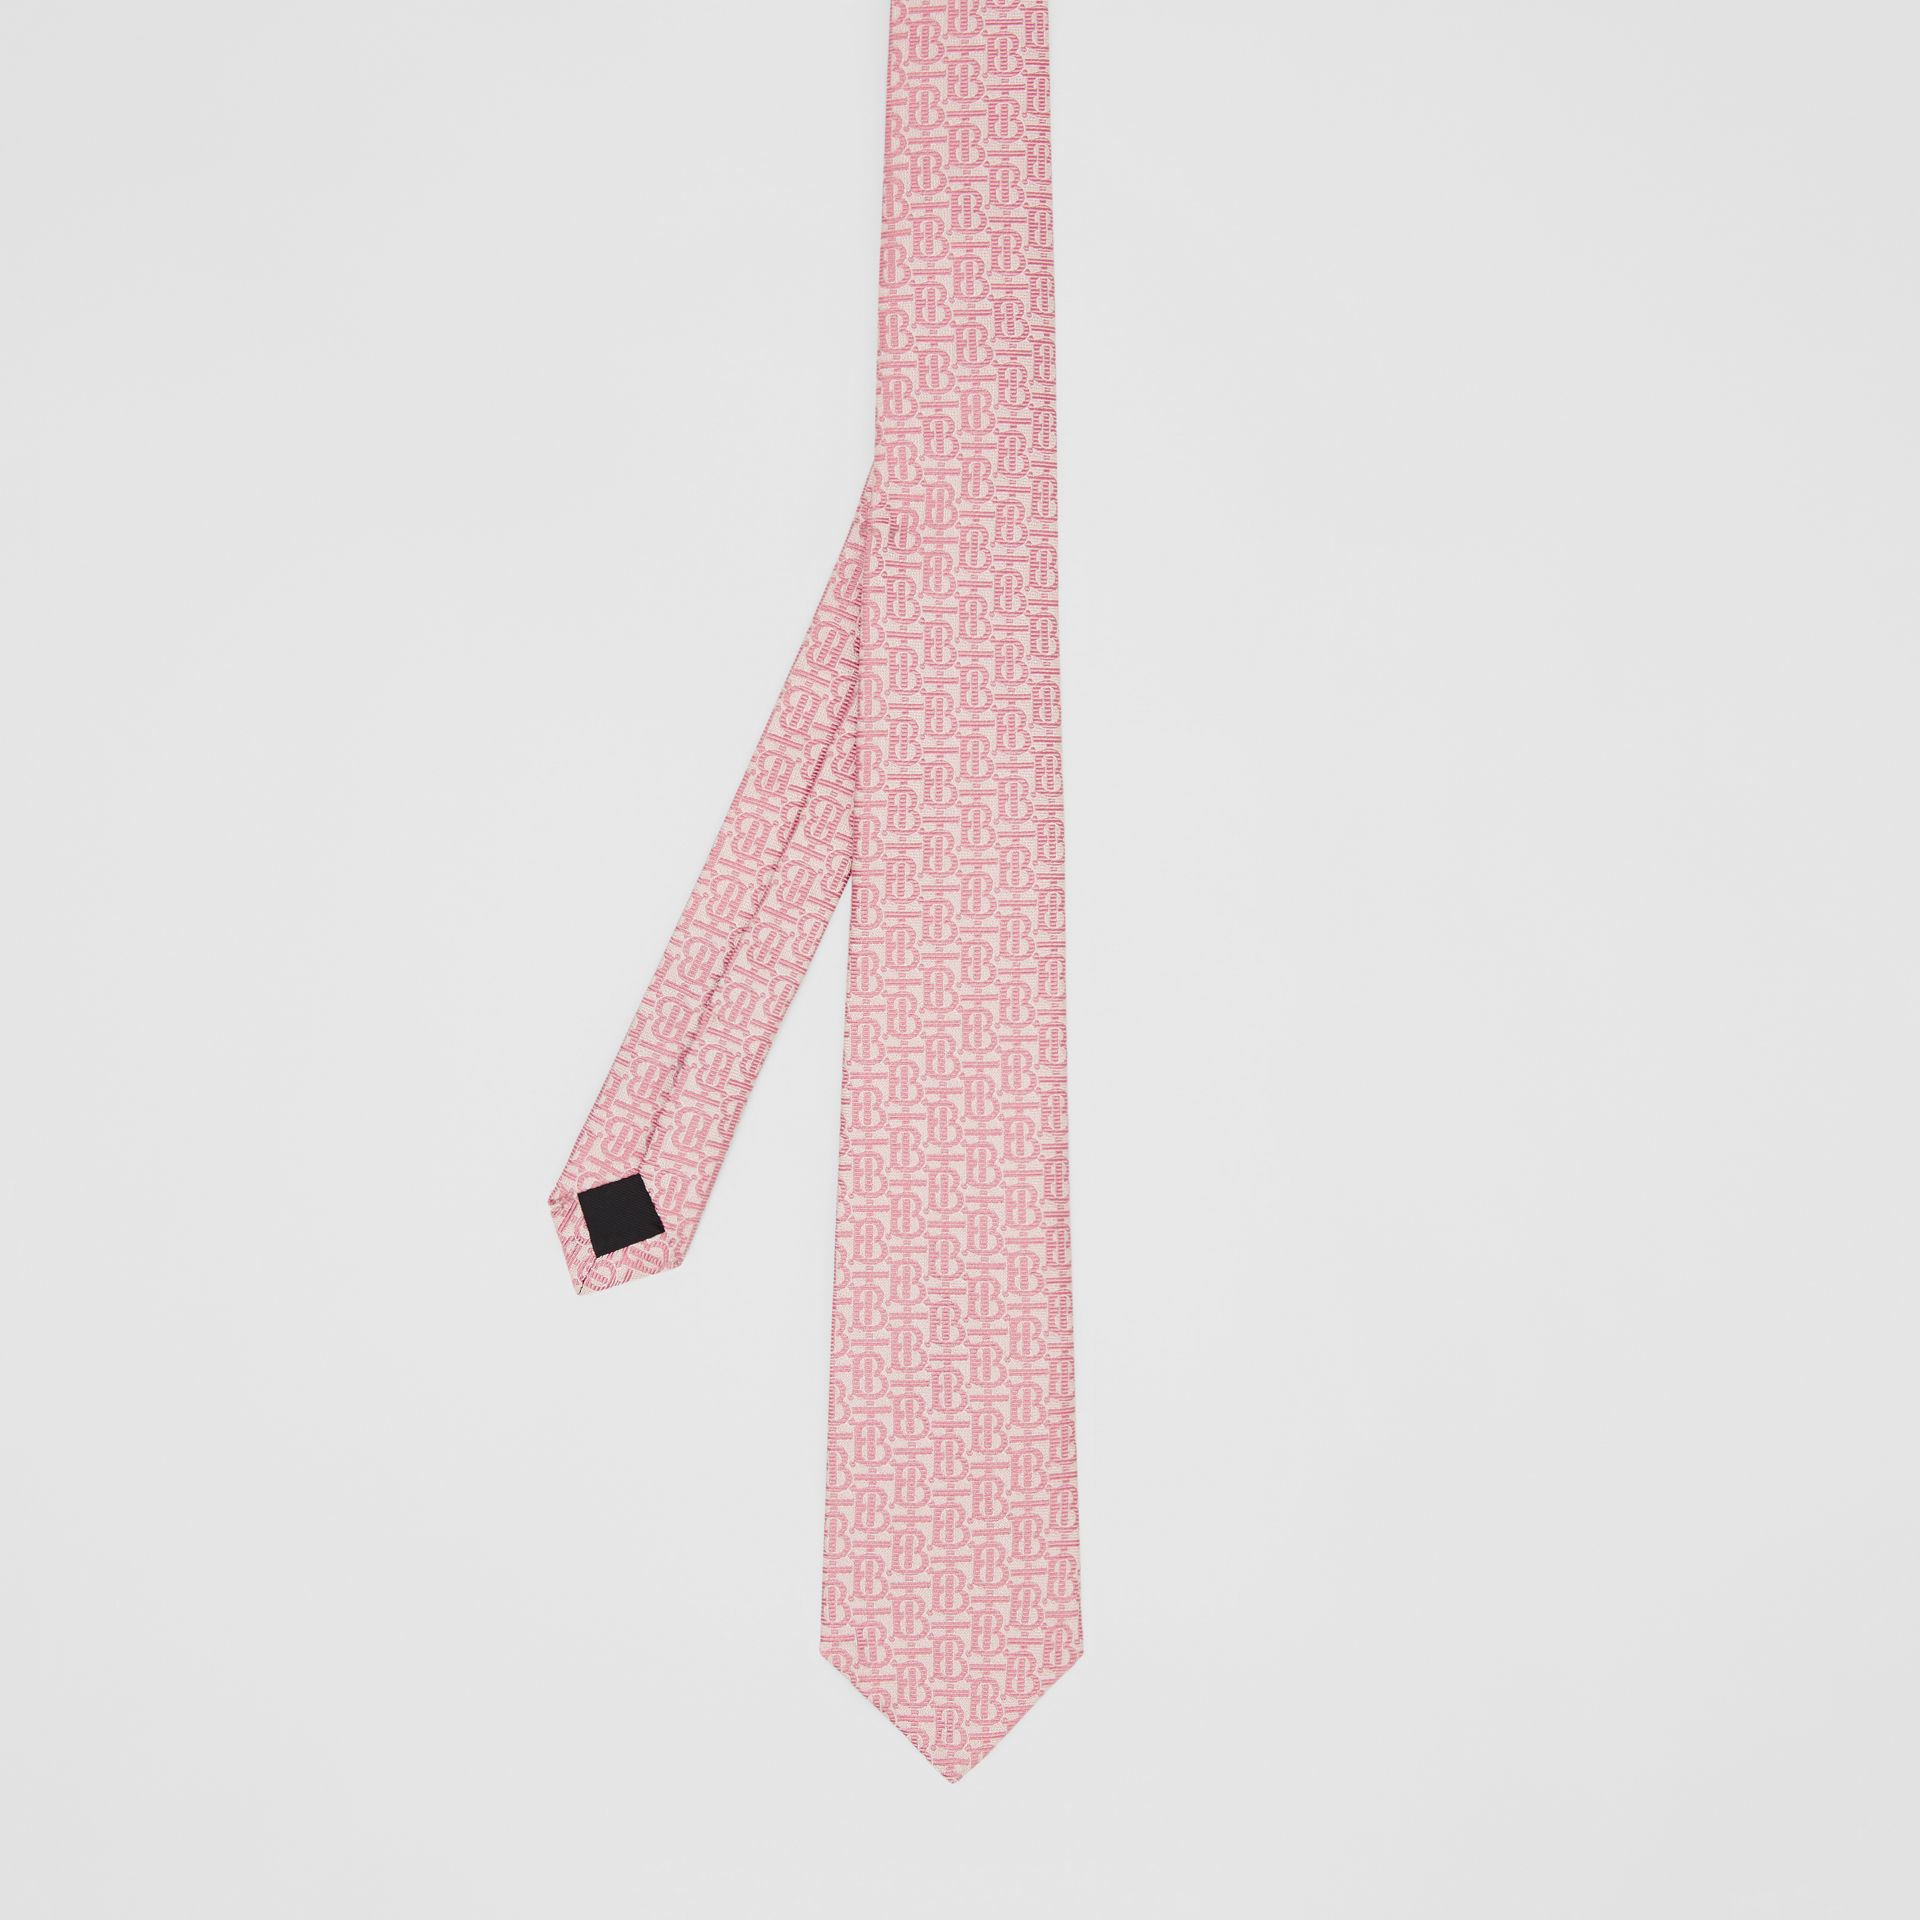 Classic Cut Monogram Silk Jacquard Tie in Alabaster Pink - Men | Burberry Singapore - gallery image 4